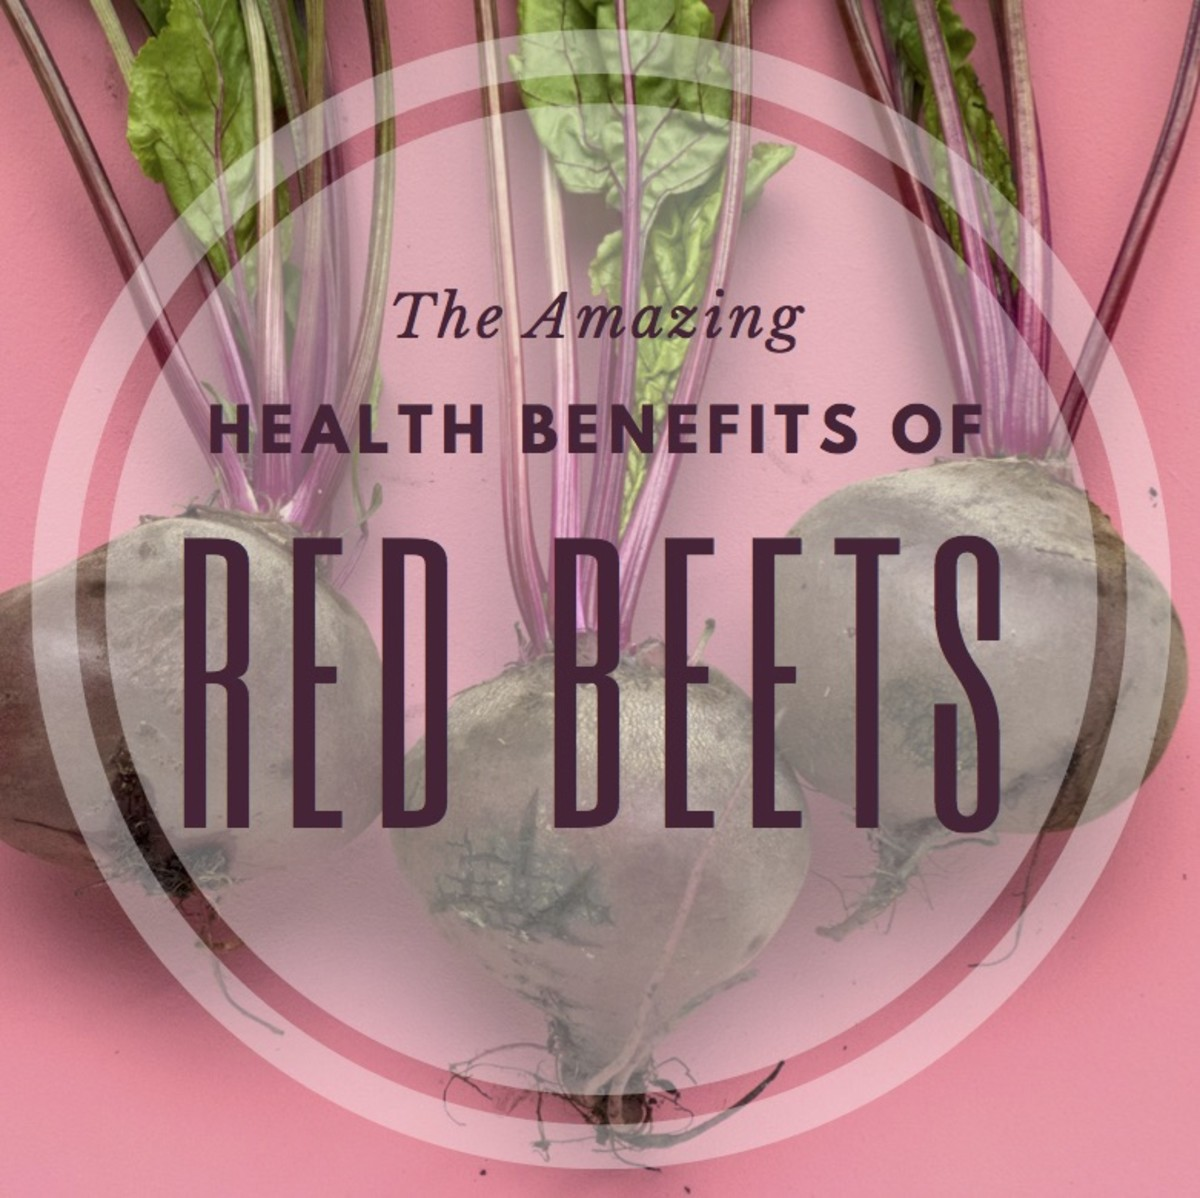 Red beets top the list of superfoods. They are loaded with vitamins and minerals and are often available year-round.